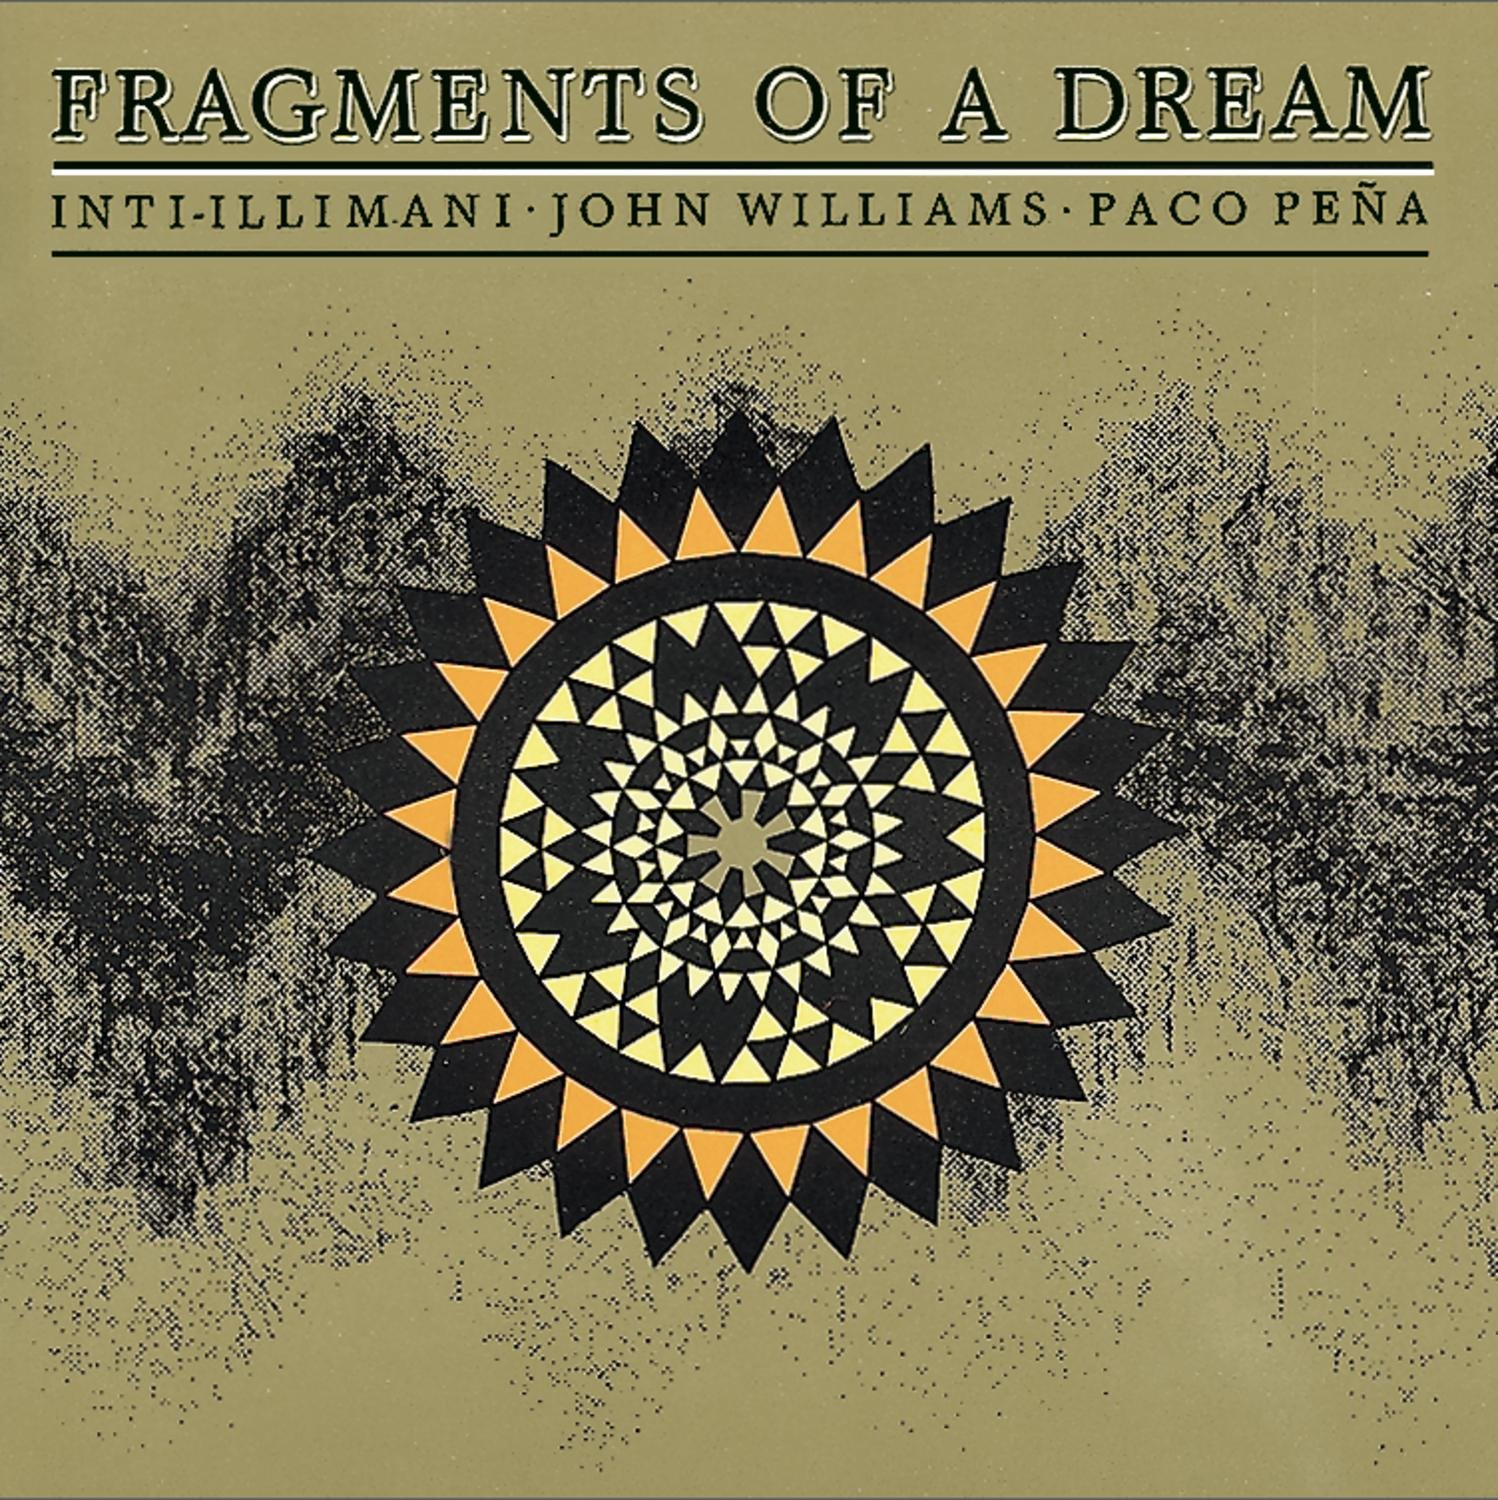 Fragments Tucson Mall Sales of SALE items from new works Of Dream A